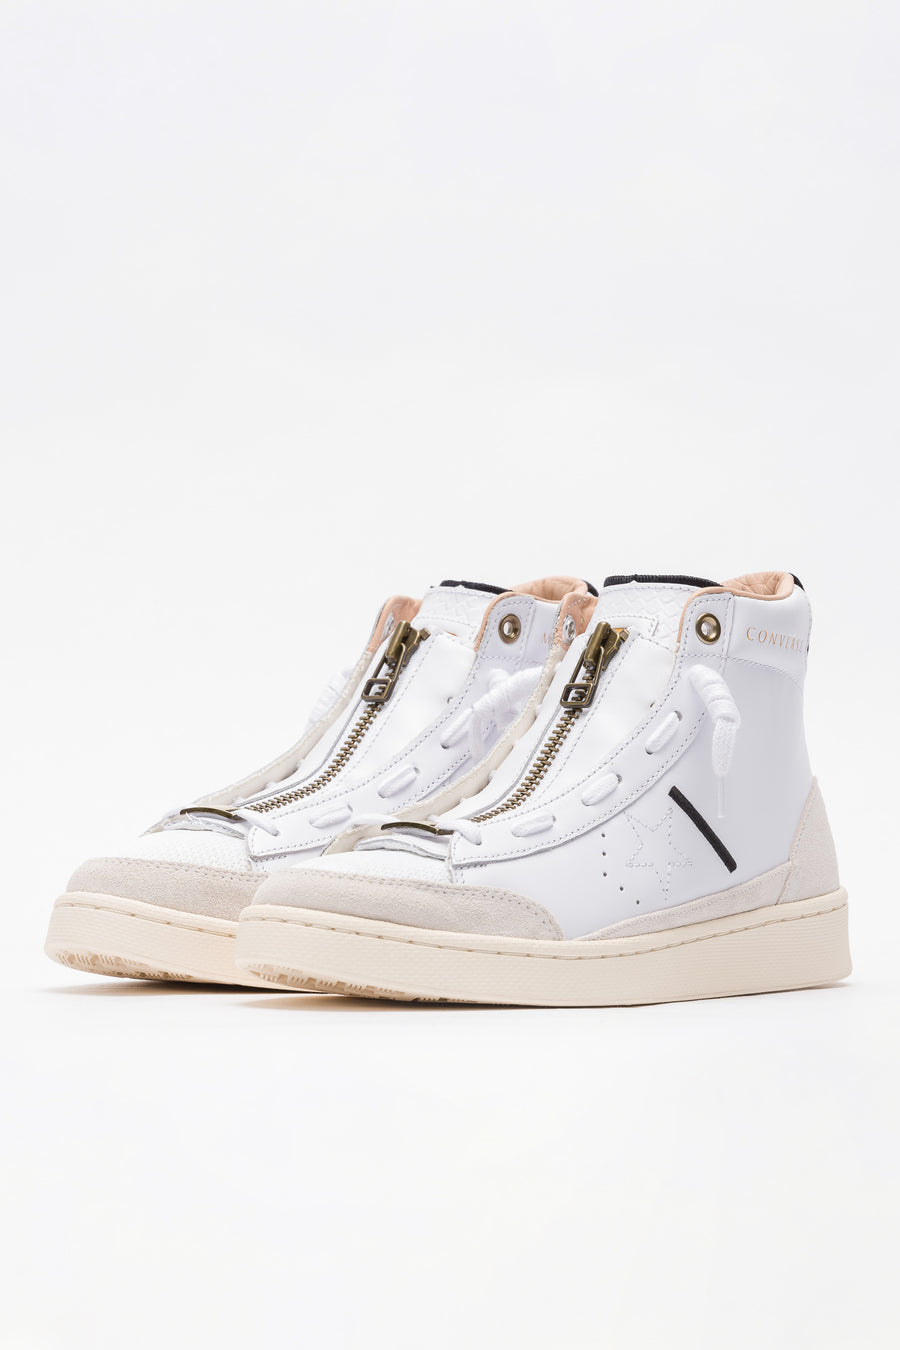 Converse Ibn Jasper Pro Leather Mid in White/Egret/Black - Notre